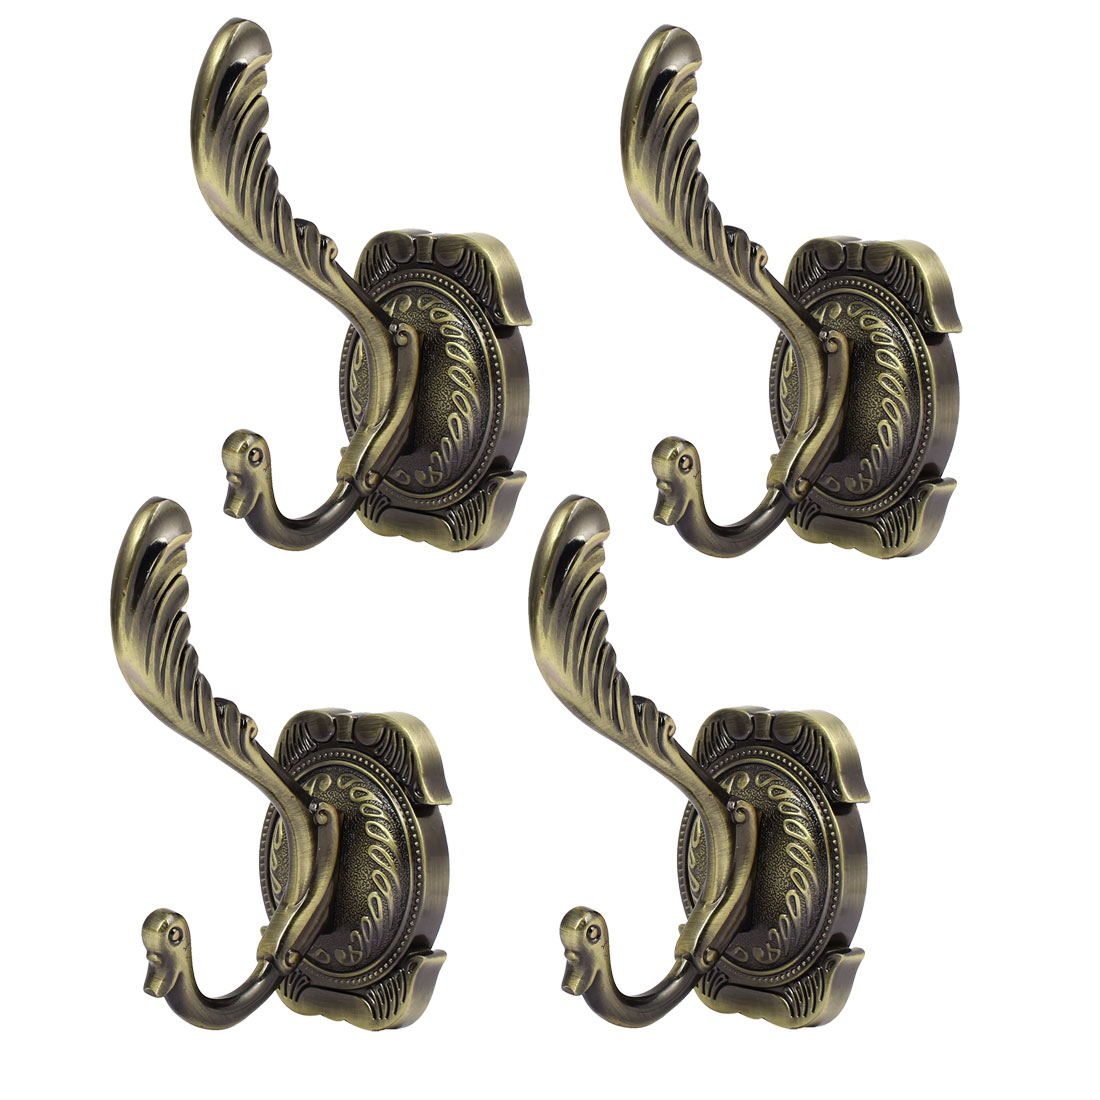 Wall Mounted Square Base Double Hooks Coat Towel Hanging Hanger Bronze Tone 4pcs